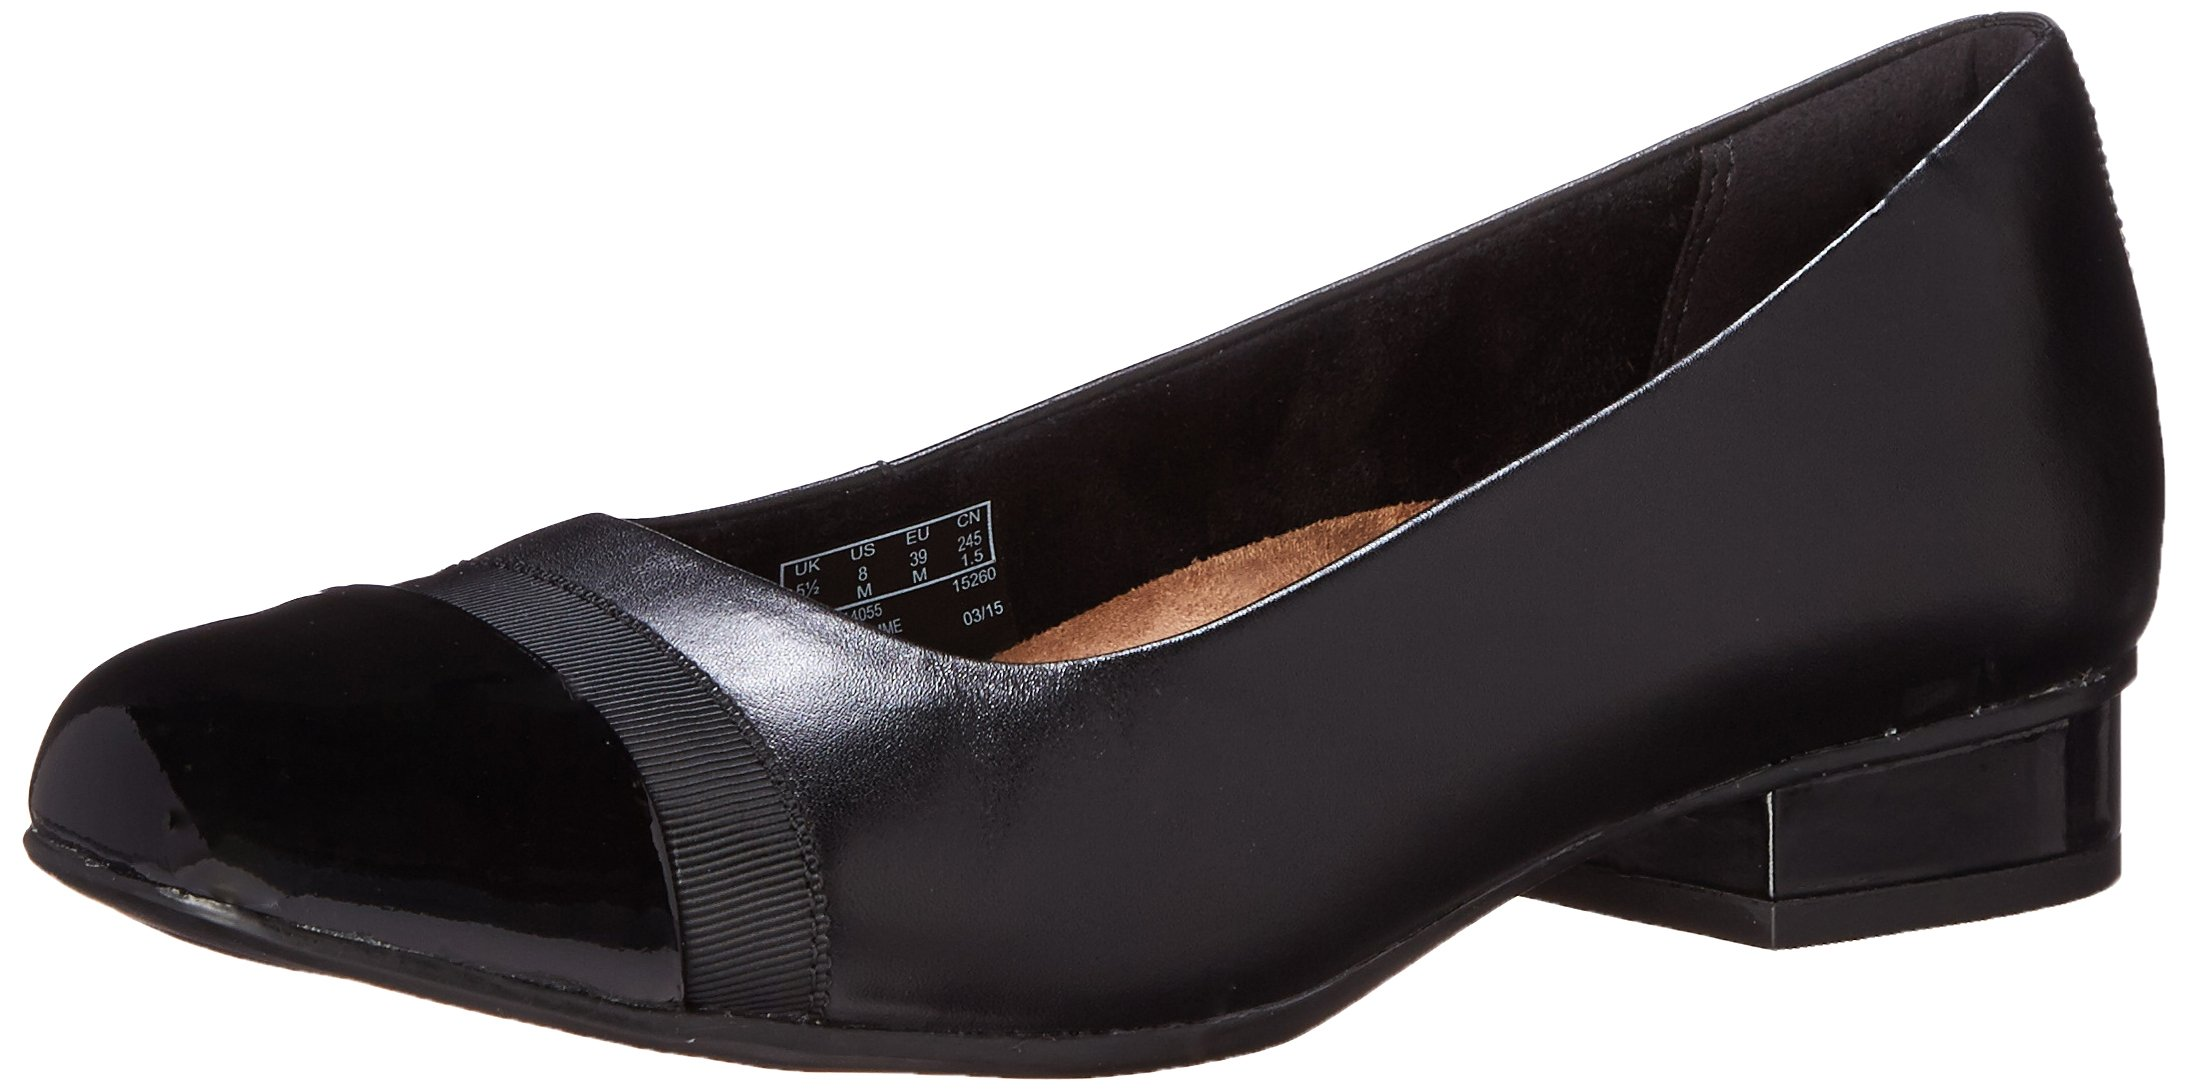 CLARKS Women's Keesha Rosa Shoe, Black Leather, 7 Medium US